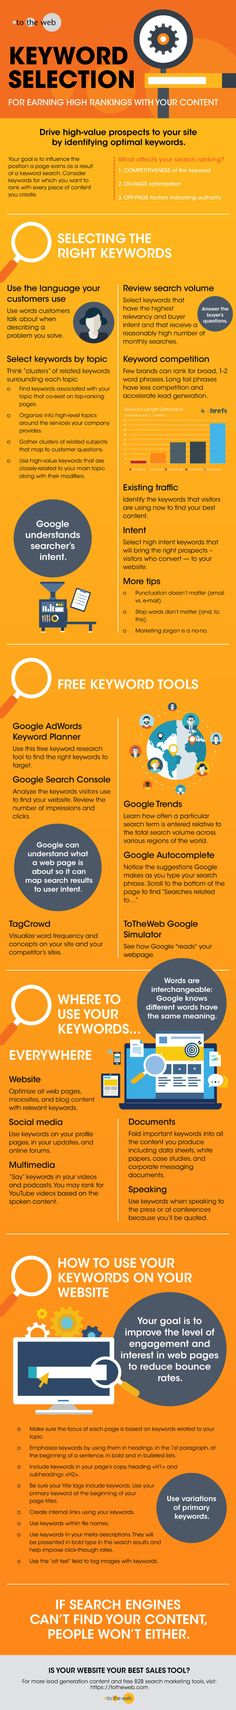 Keyword Selection: The Key to Improving Search Ranking | Infographic